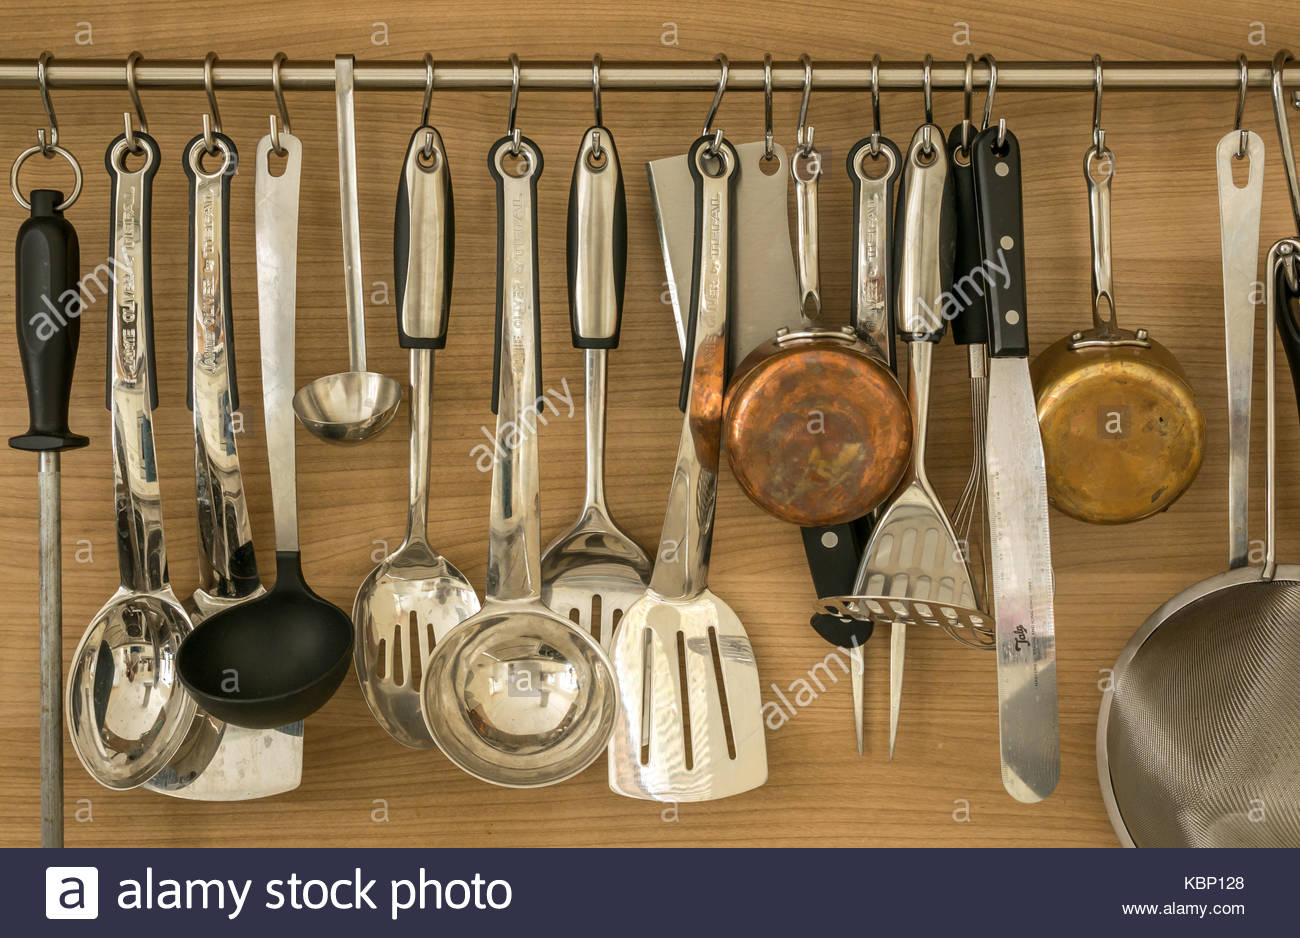 copper utensils stock photos copper utensils stock images alamy. Black Bedroom Furniture Sets. Home Design Ideas